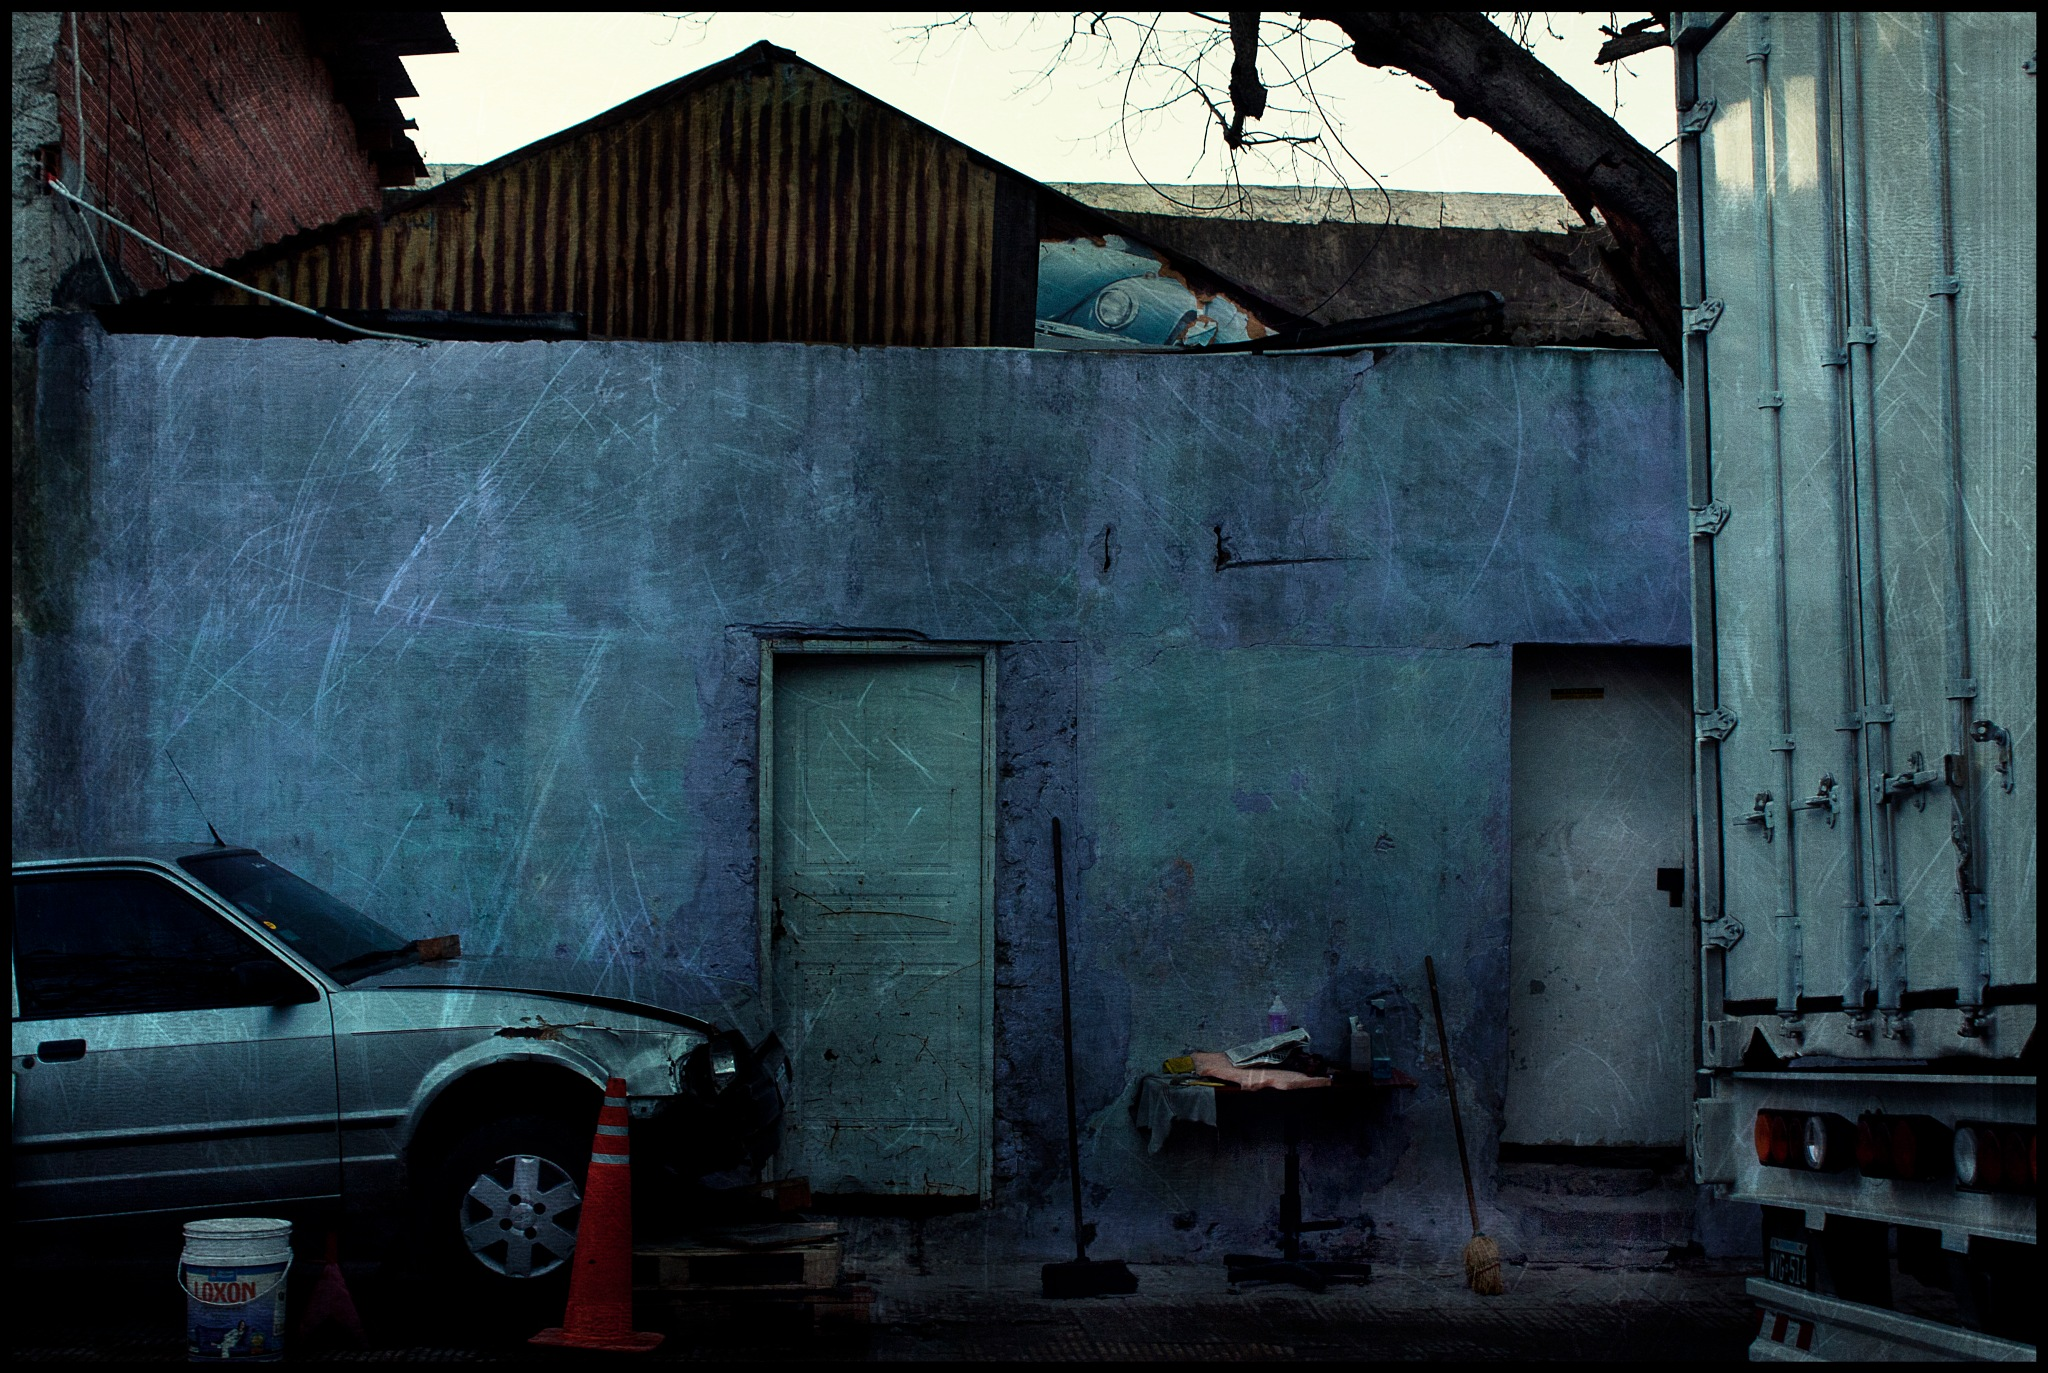 Suburnan scape II by Guillermo Mayoral